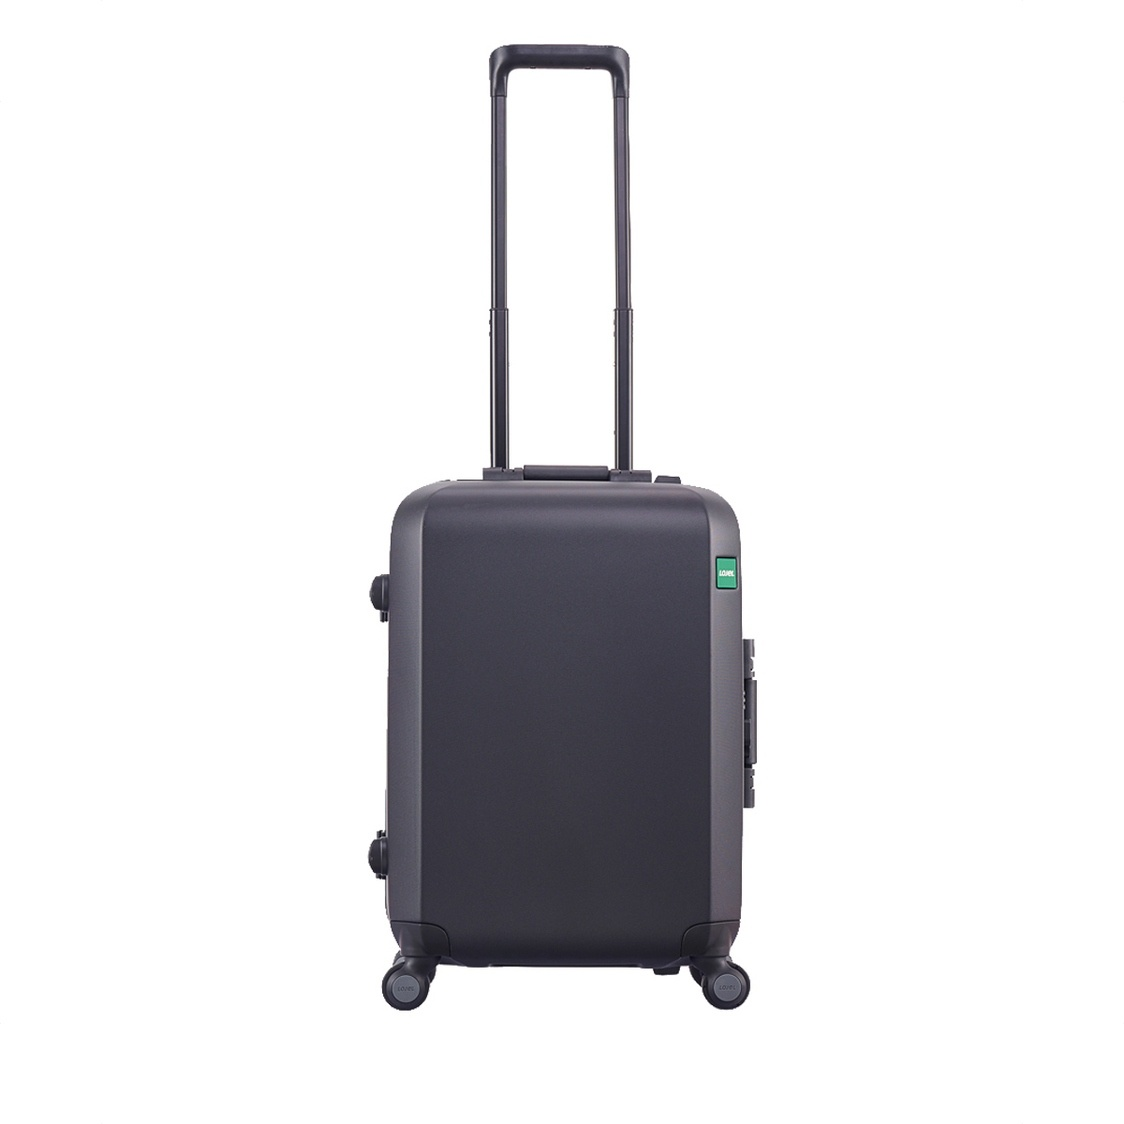 Rando Frame Luggage - Black